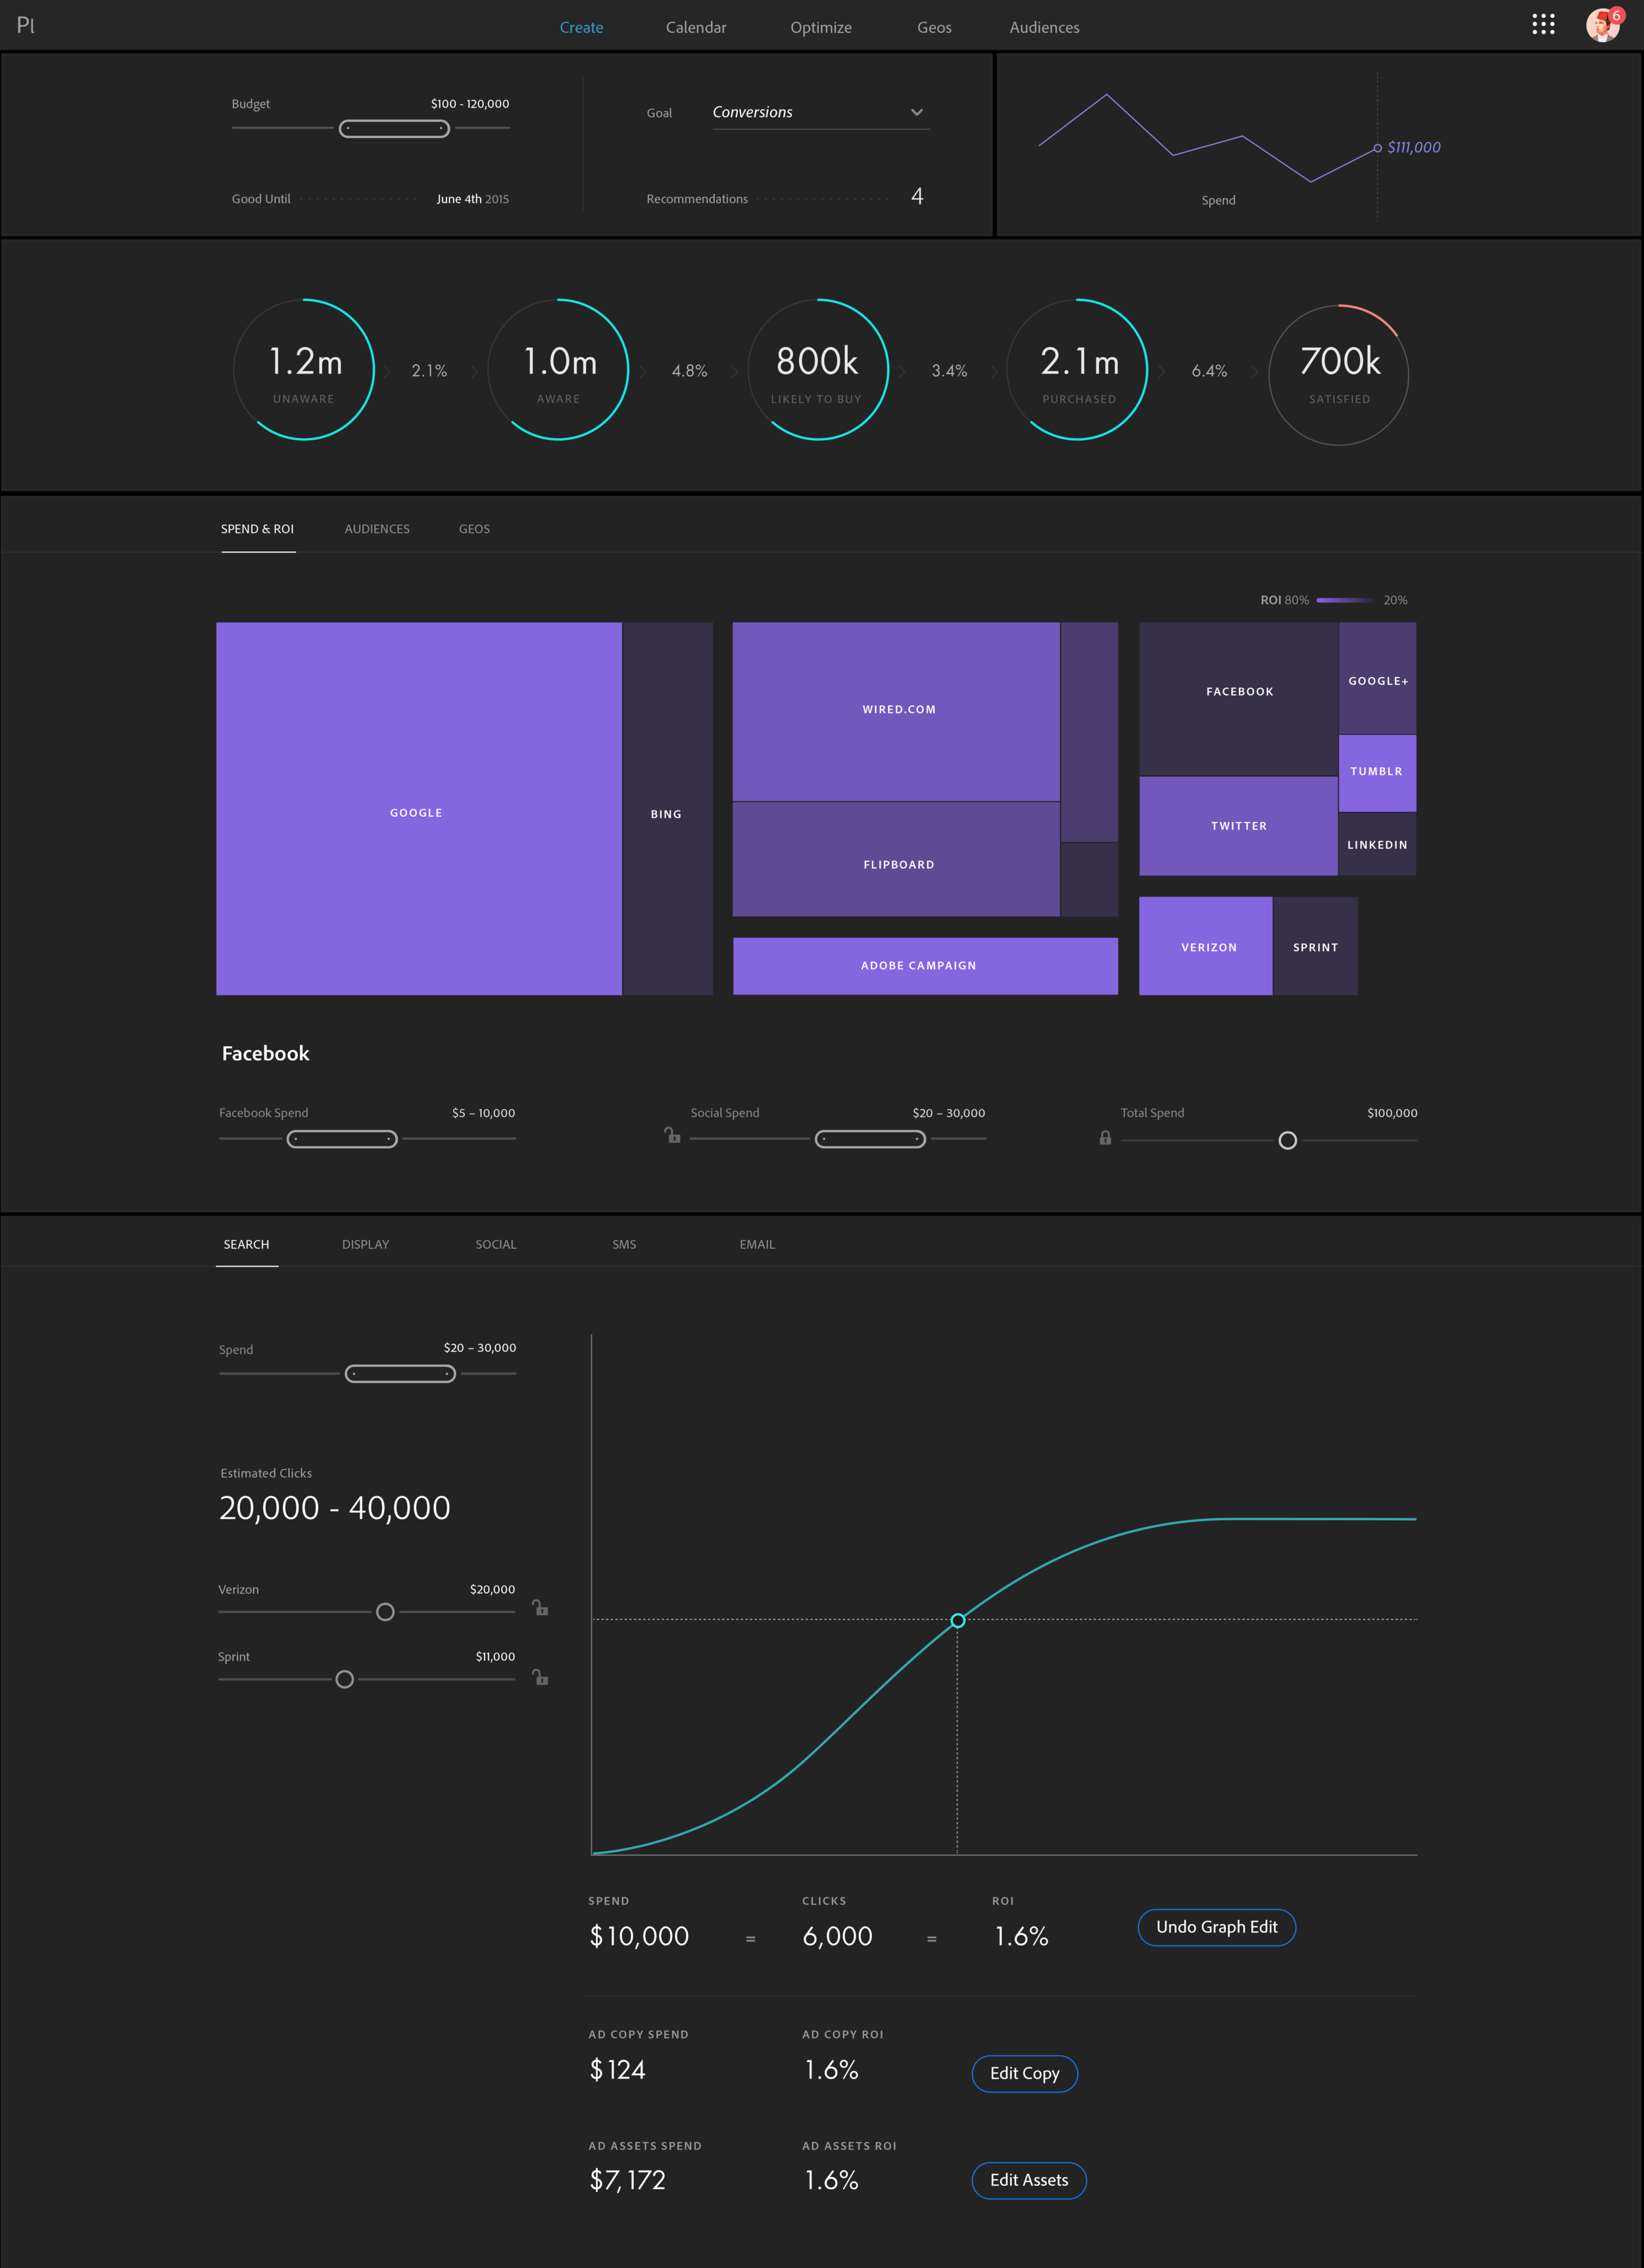 This is styled version of a pervious wireframe. Page filters along with some high level metrics at the top provide users with a summary of their marketing performance.  An interactive ROI tree map of then allows for a channel to be selected whereby users then get a breakdown of spend on that channel, Facebook in this screen, with controls to change the spend and a graph on the bottom so users can visualize the expected return for a given spend.